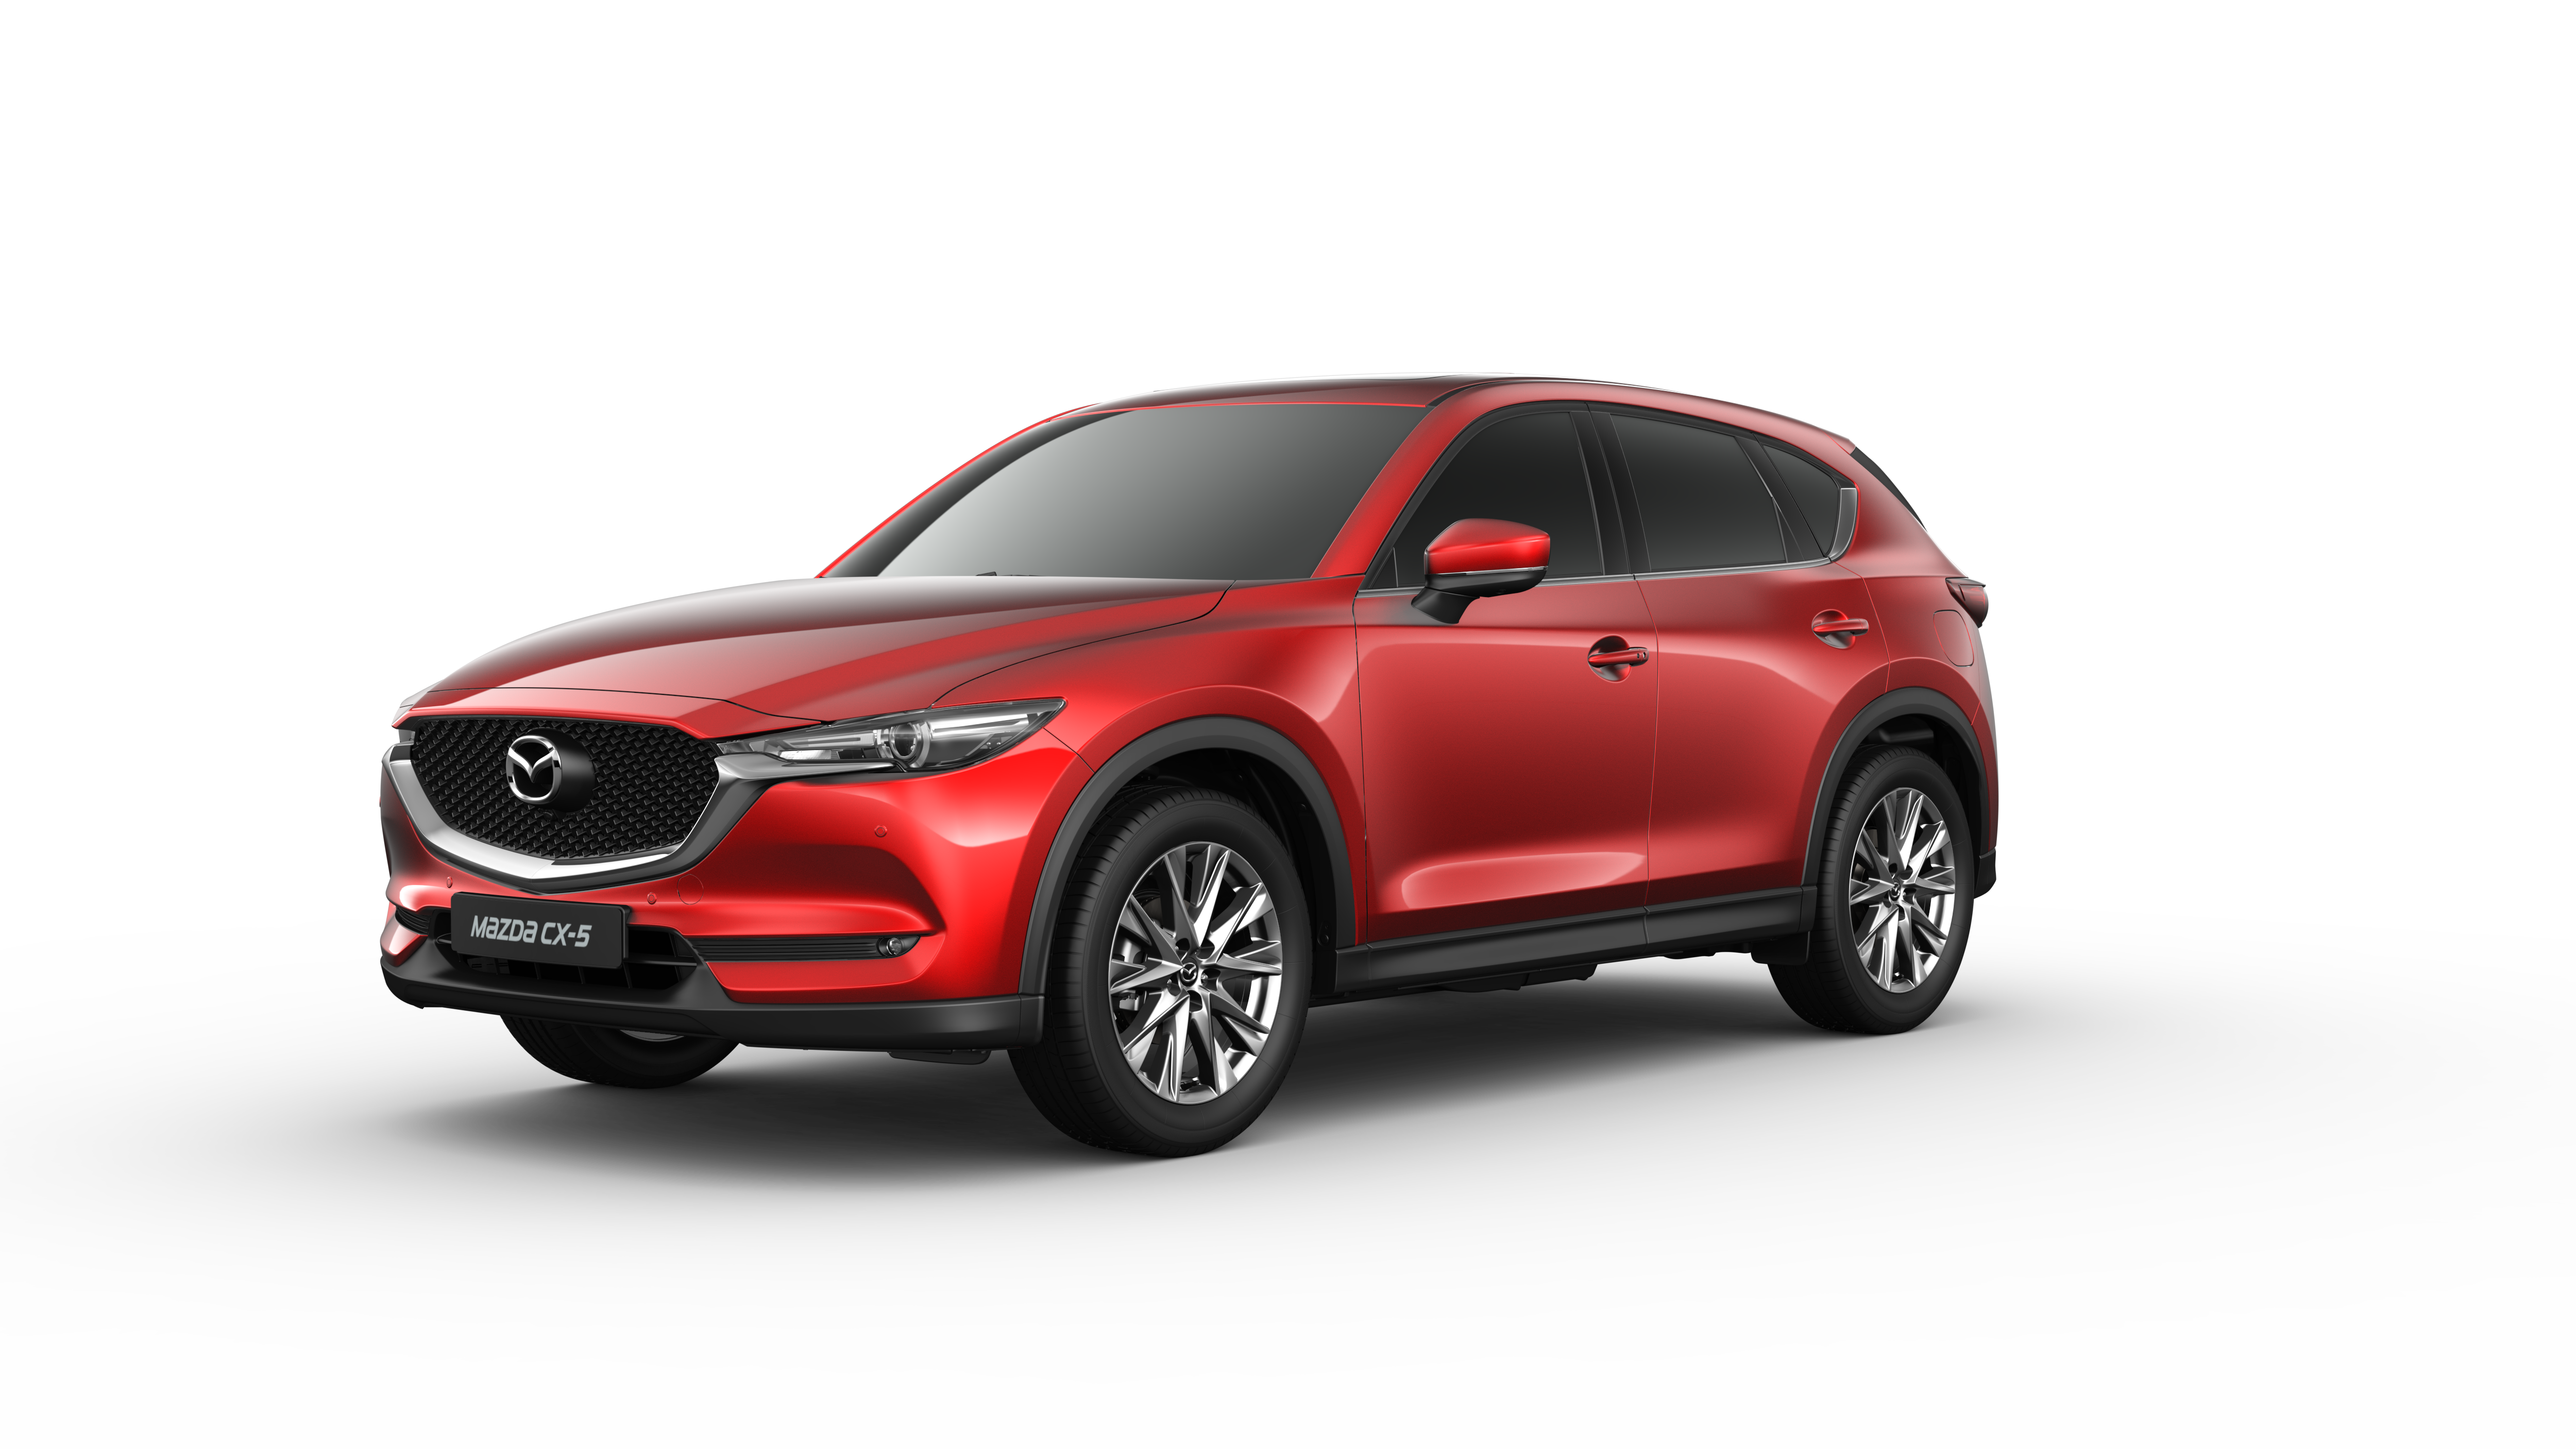 cx-5_zdl4_zp86laa_46v_kf2_ext_high_trans